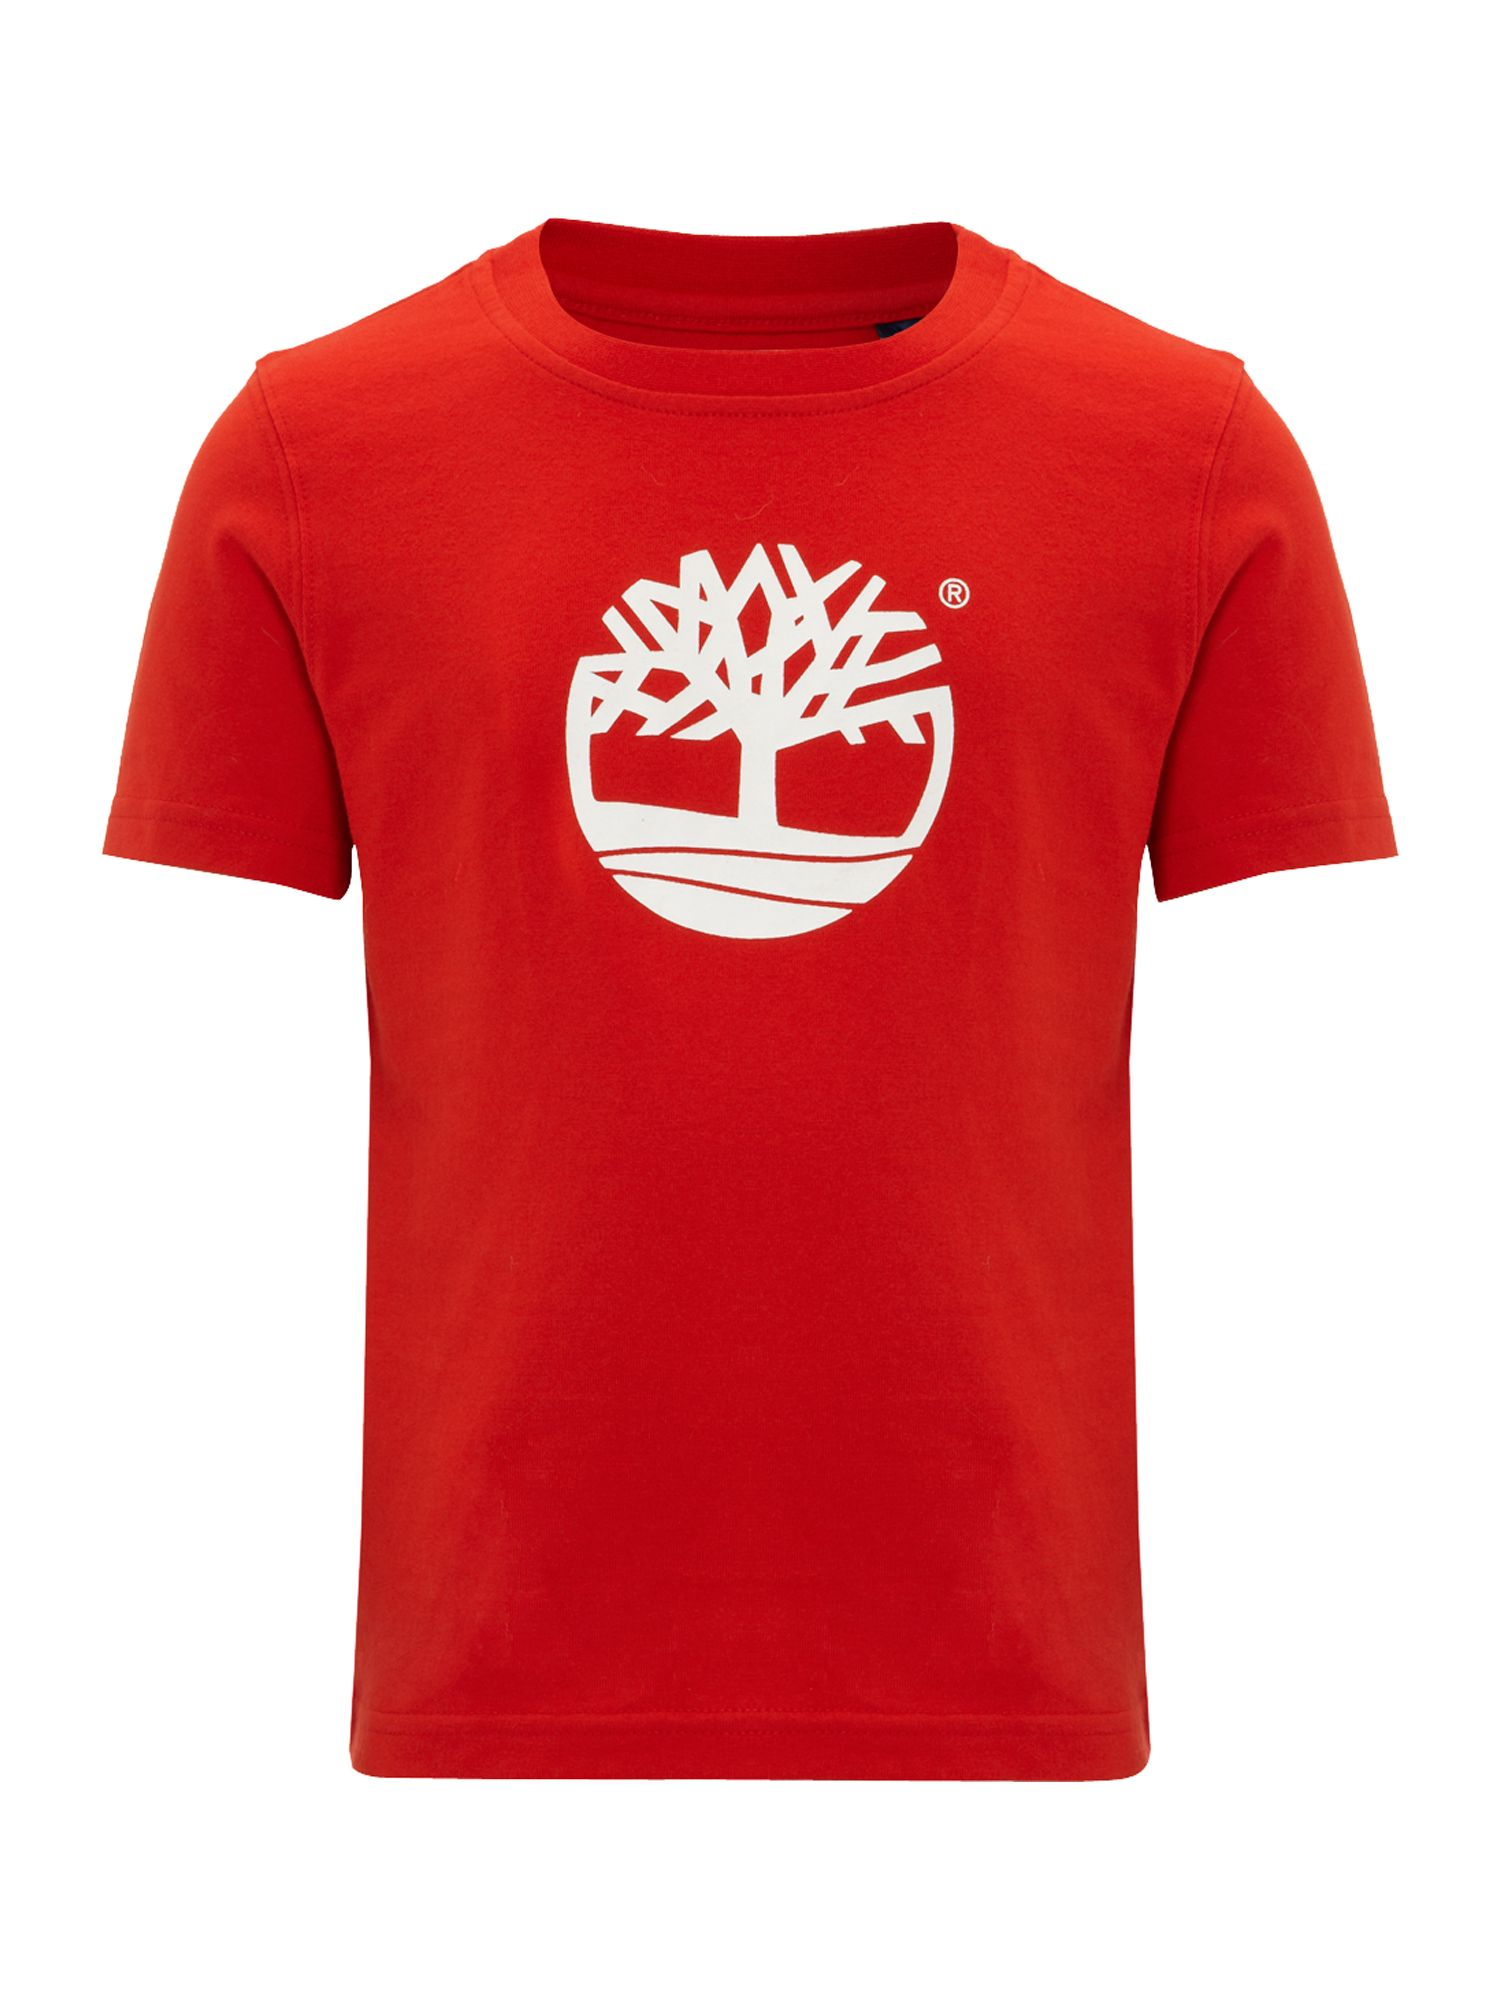 Boy`s Tee shirt 100% cotton